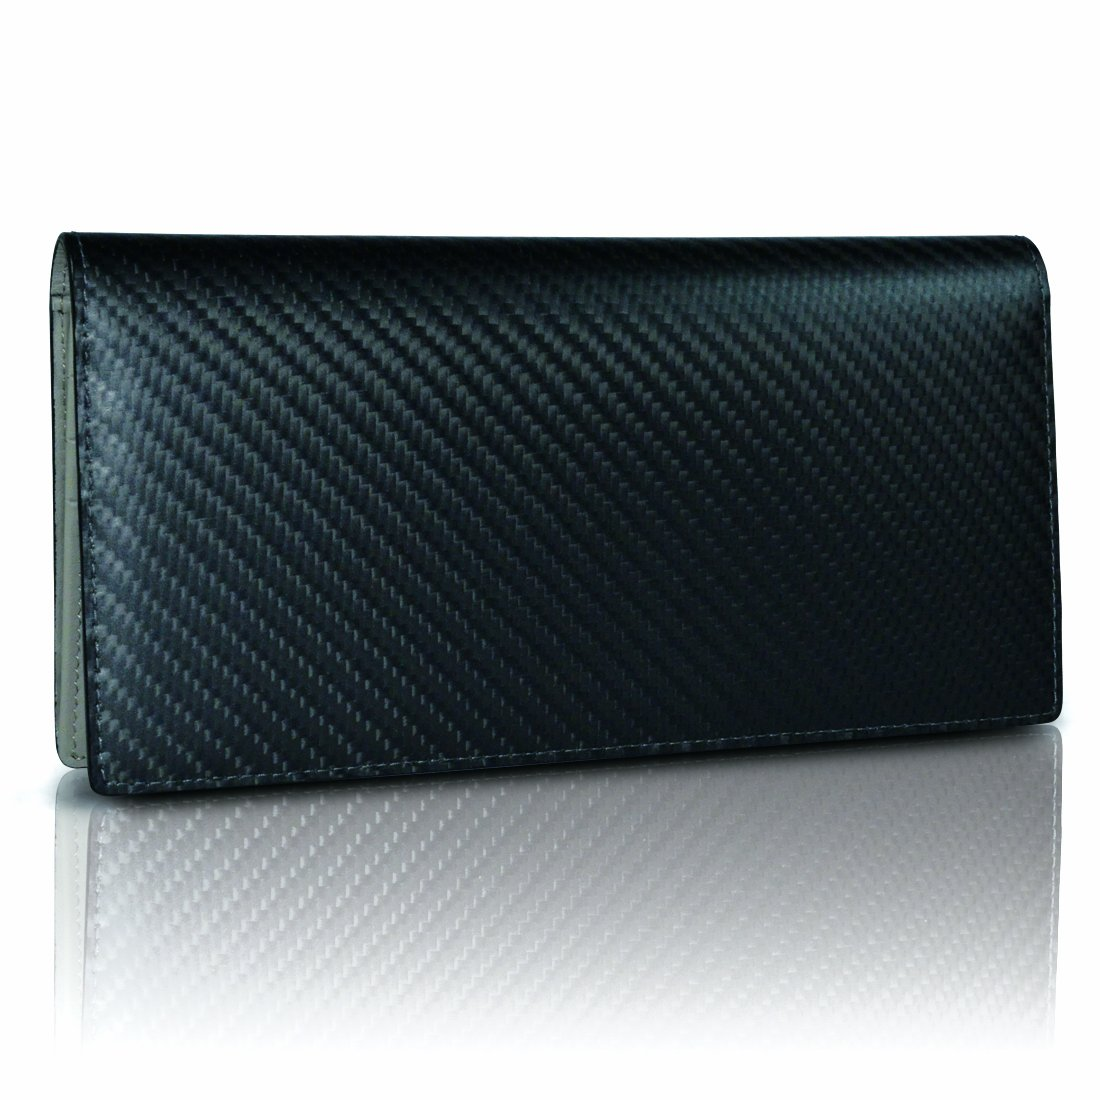 monCarbone Carbon SOFT Coat Wallet by monCarbone (Image #1)